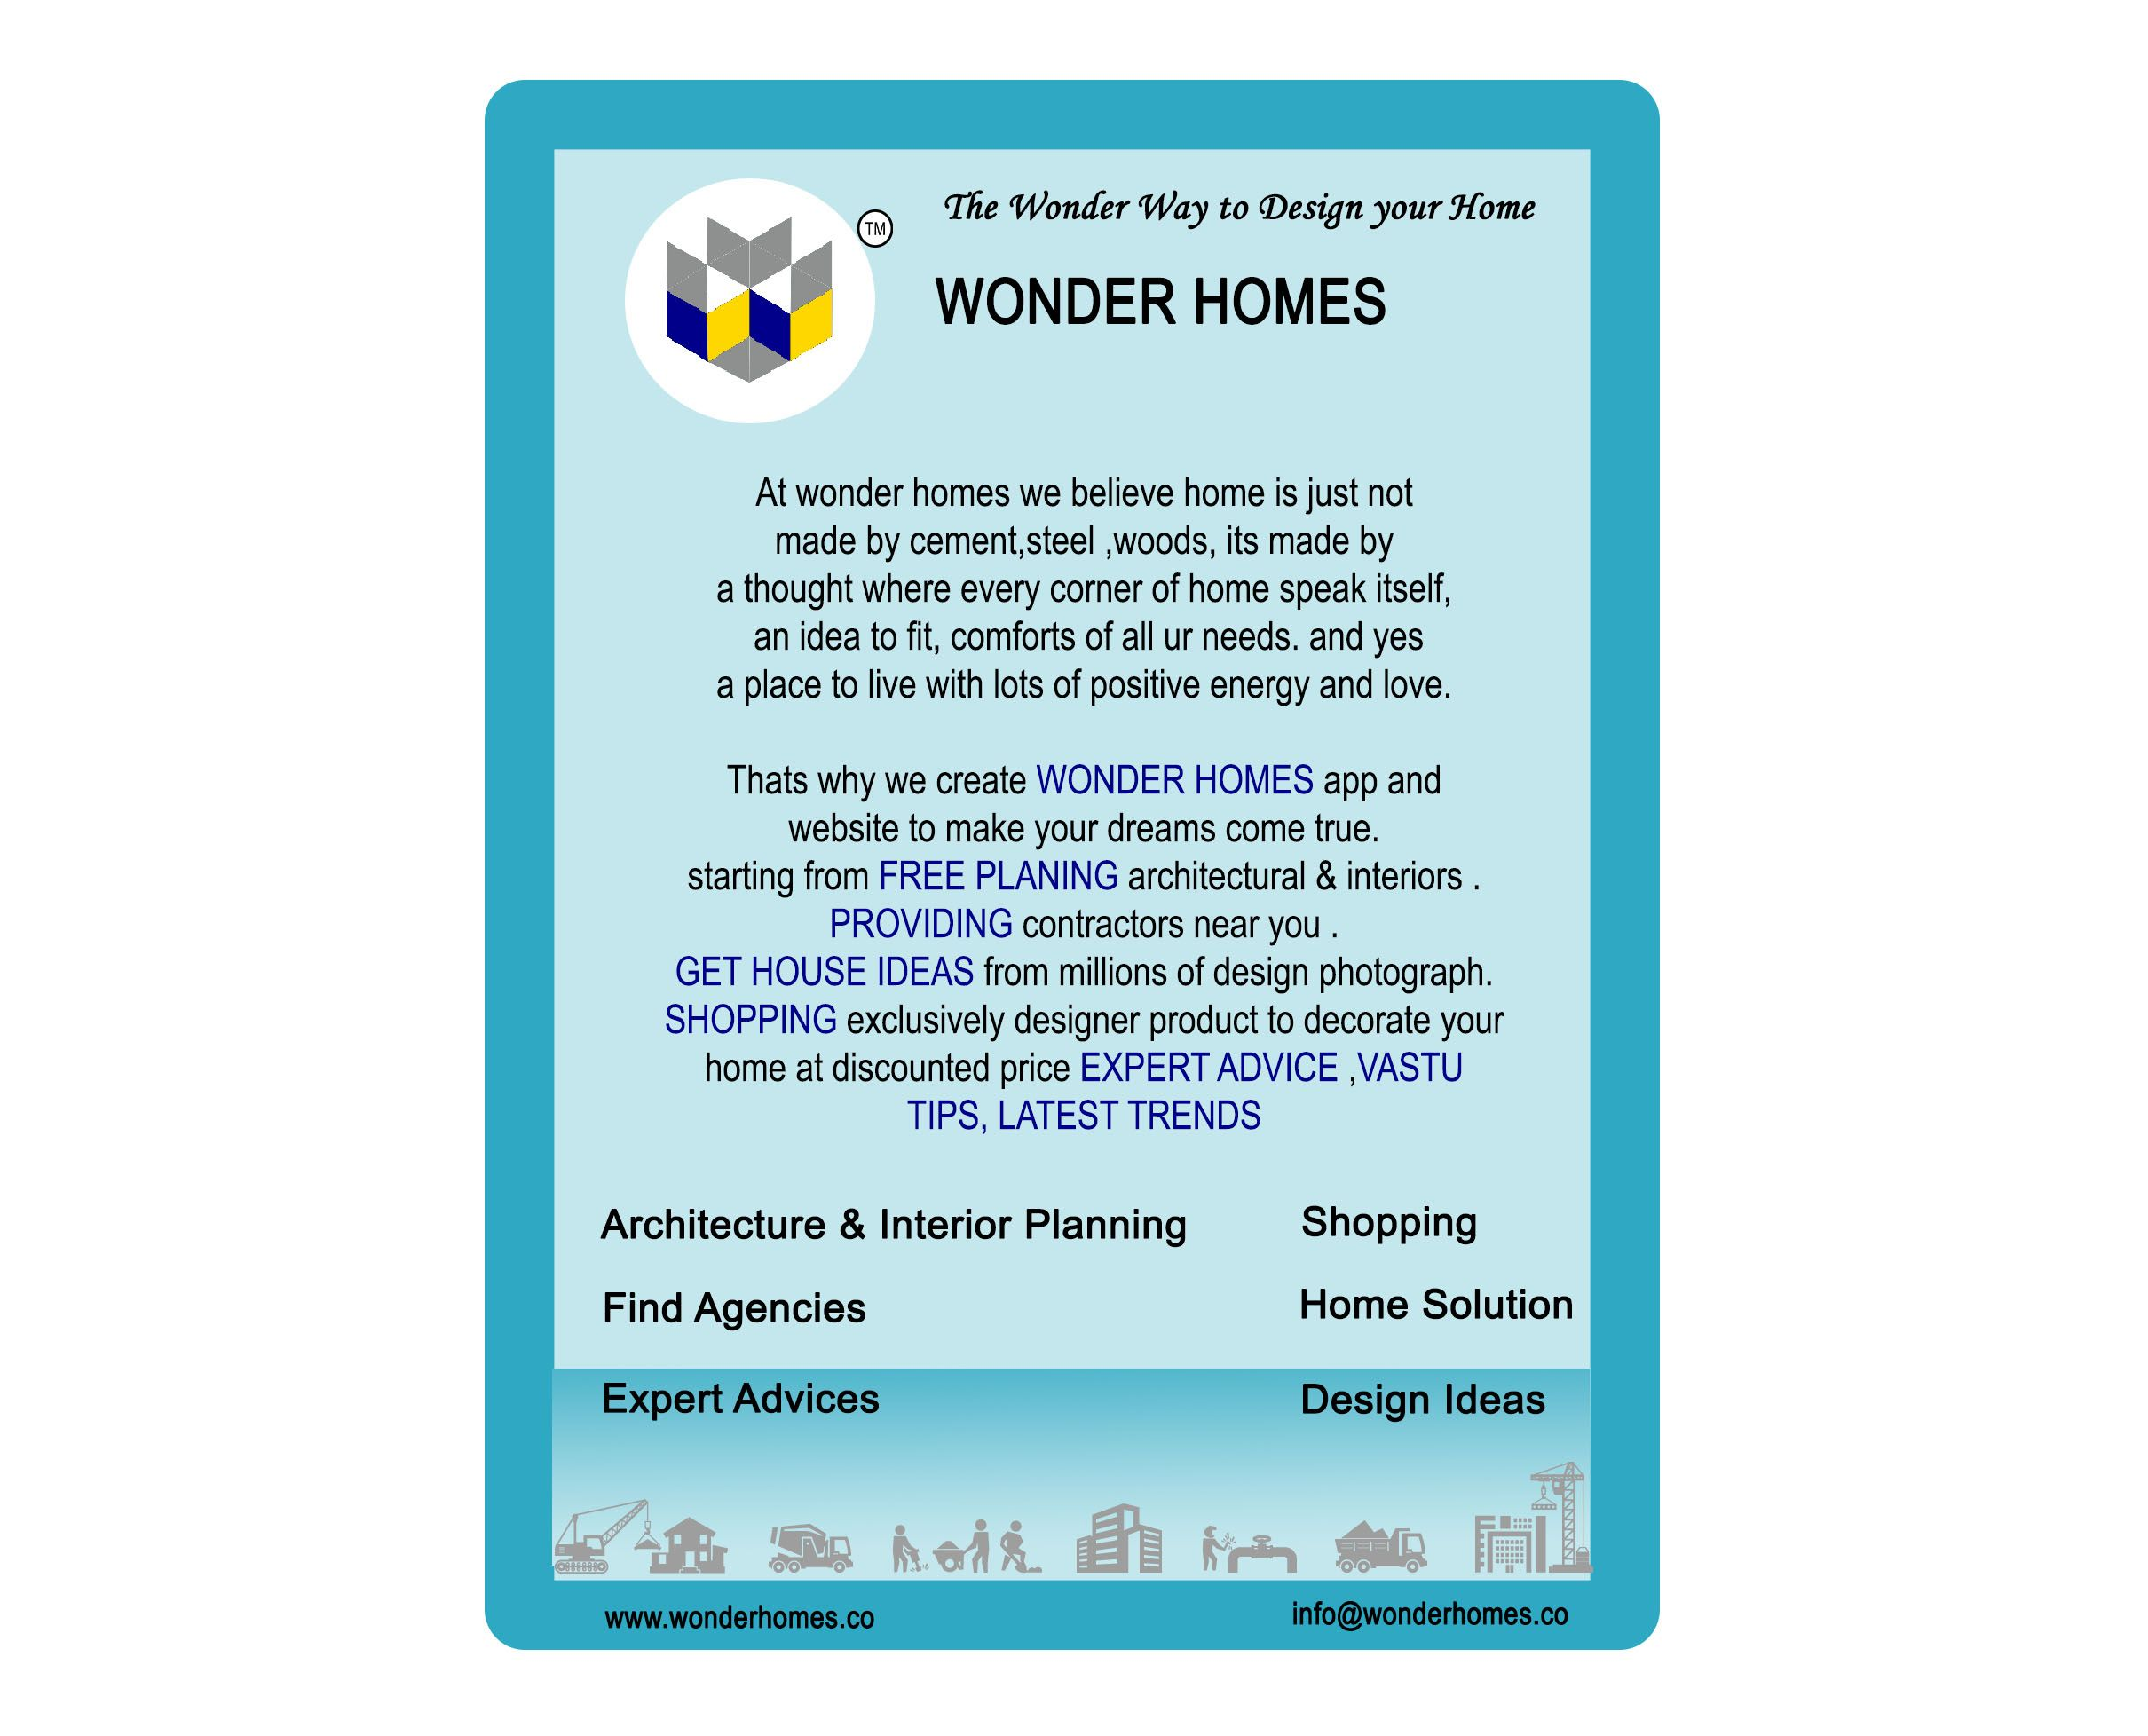 At wonder homes we believe home is just not made by cement,steel woods,